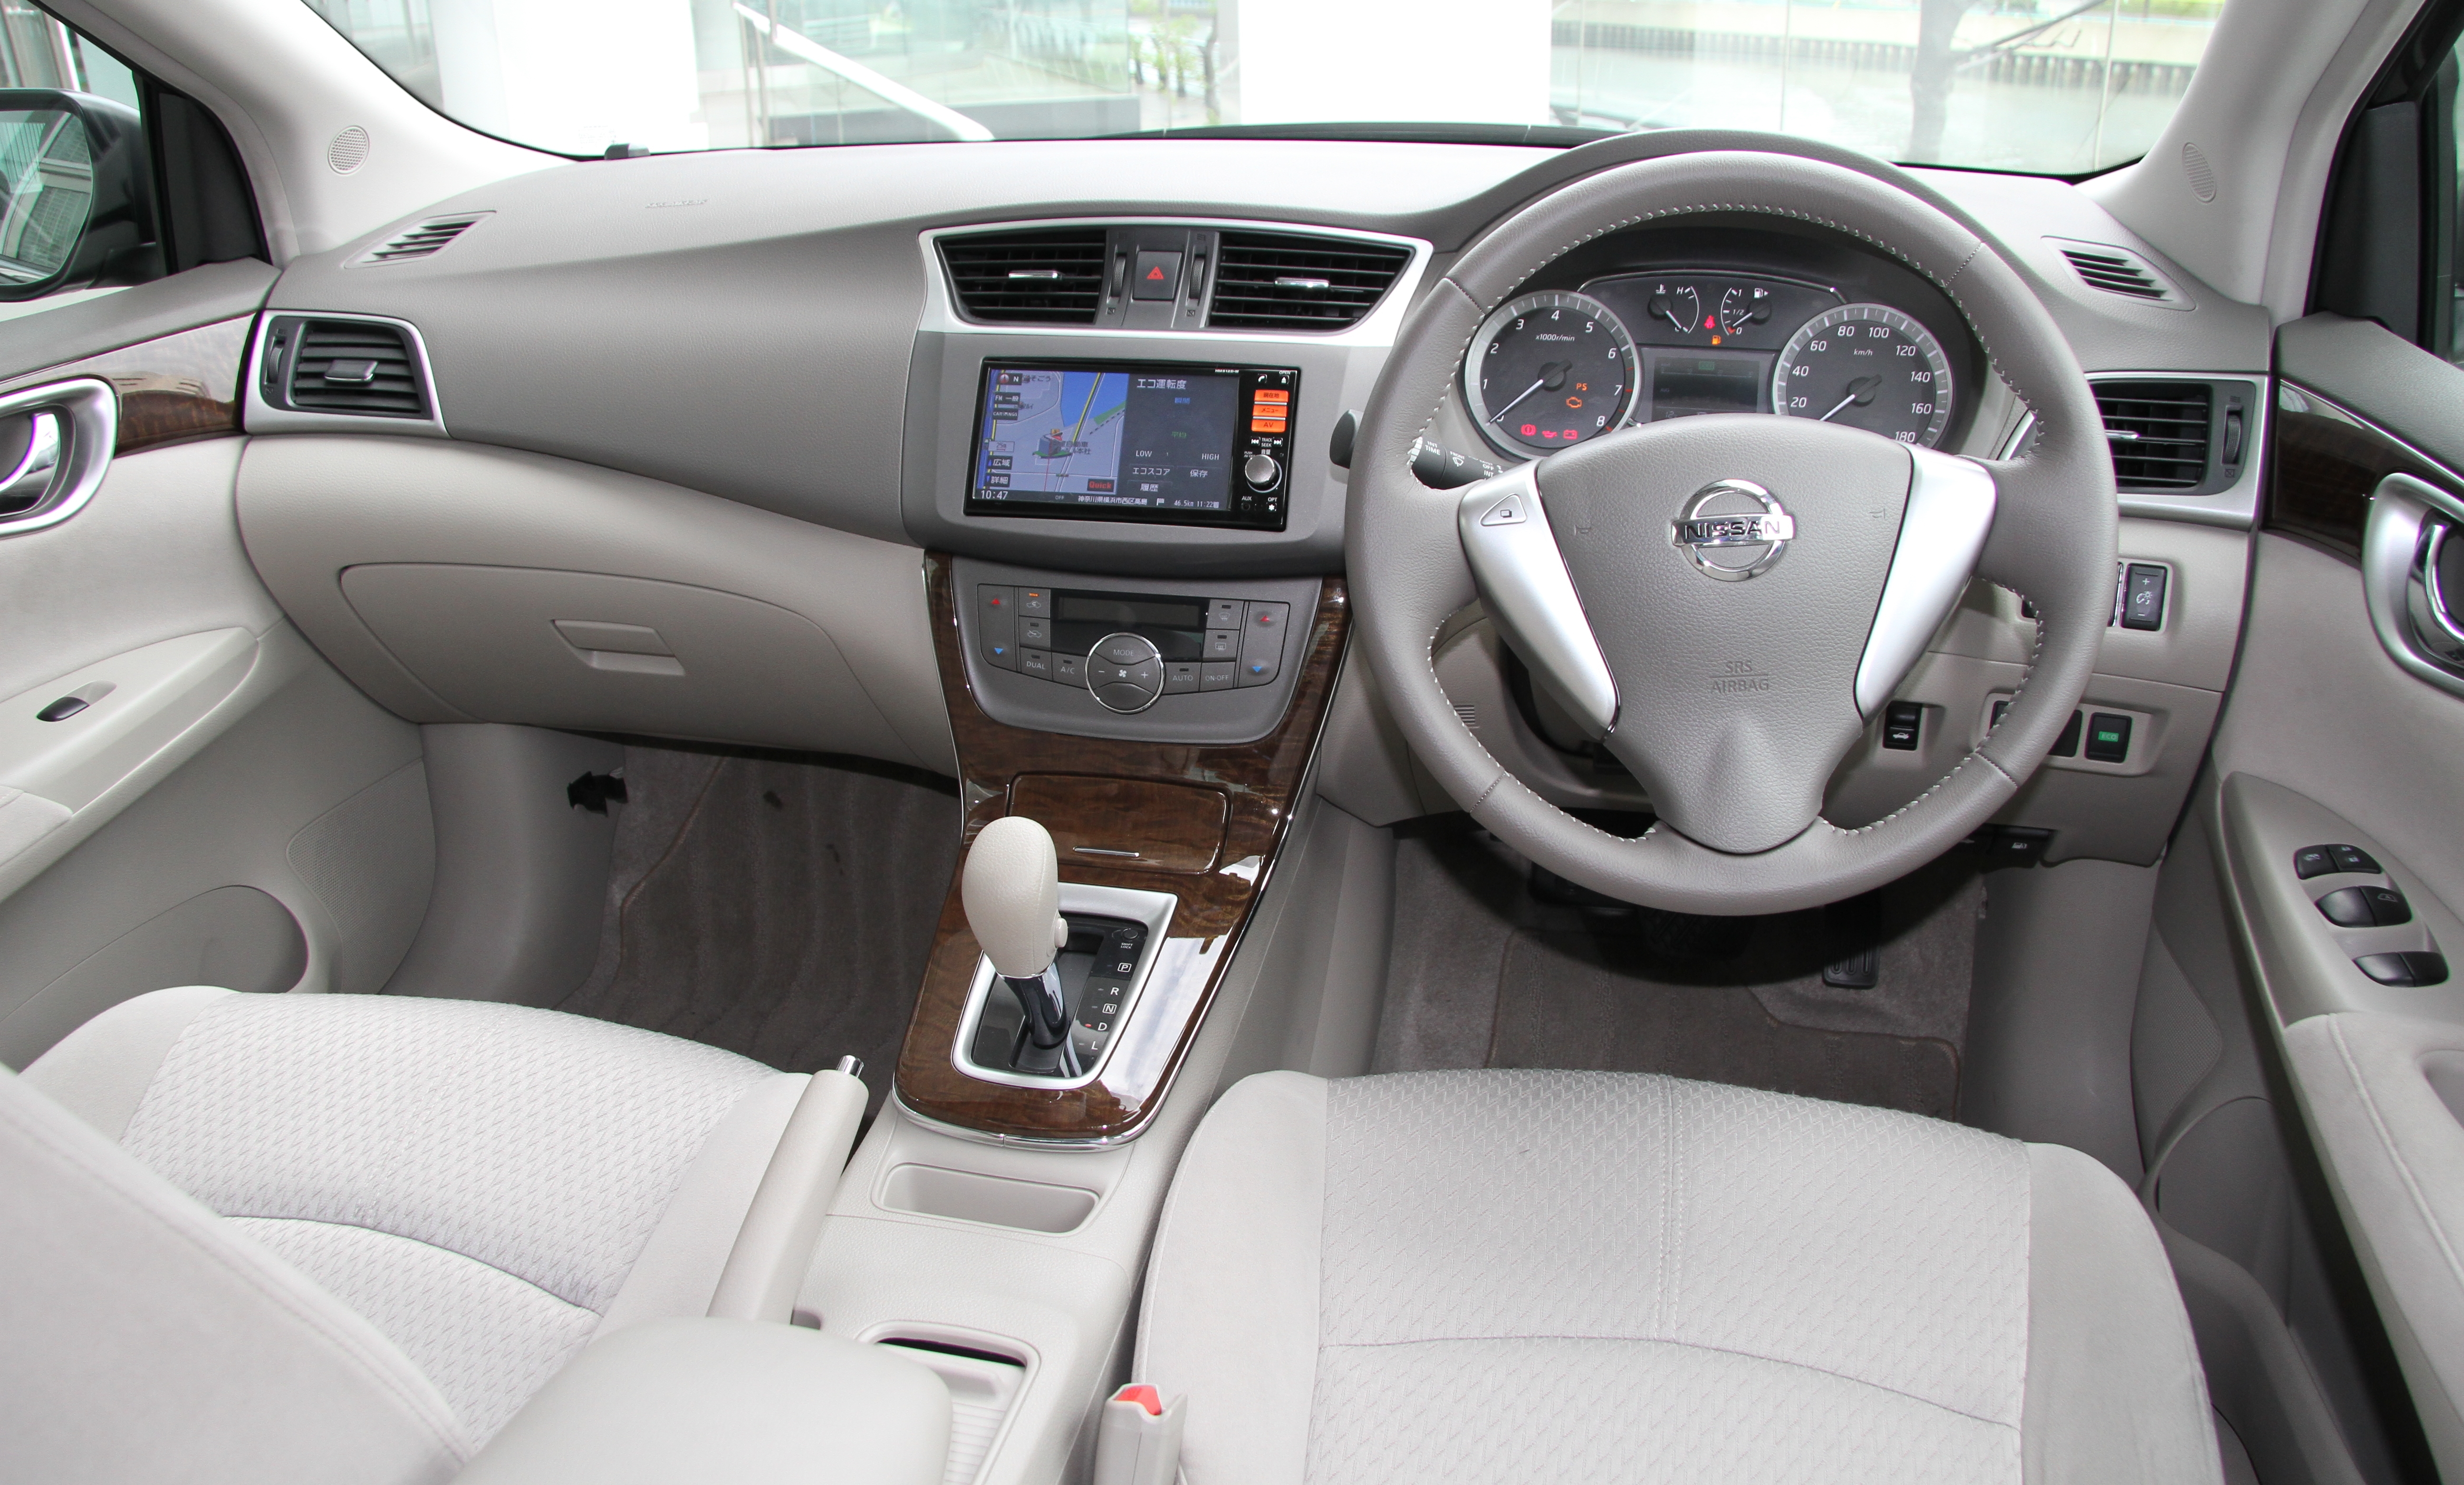 File:Nissan Sylphy B17 G interior.jpg - Wikimedia Commons